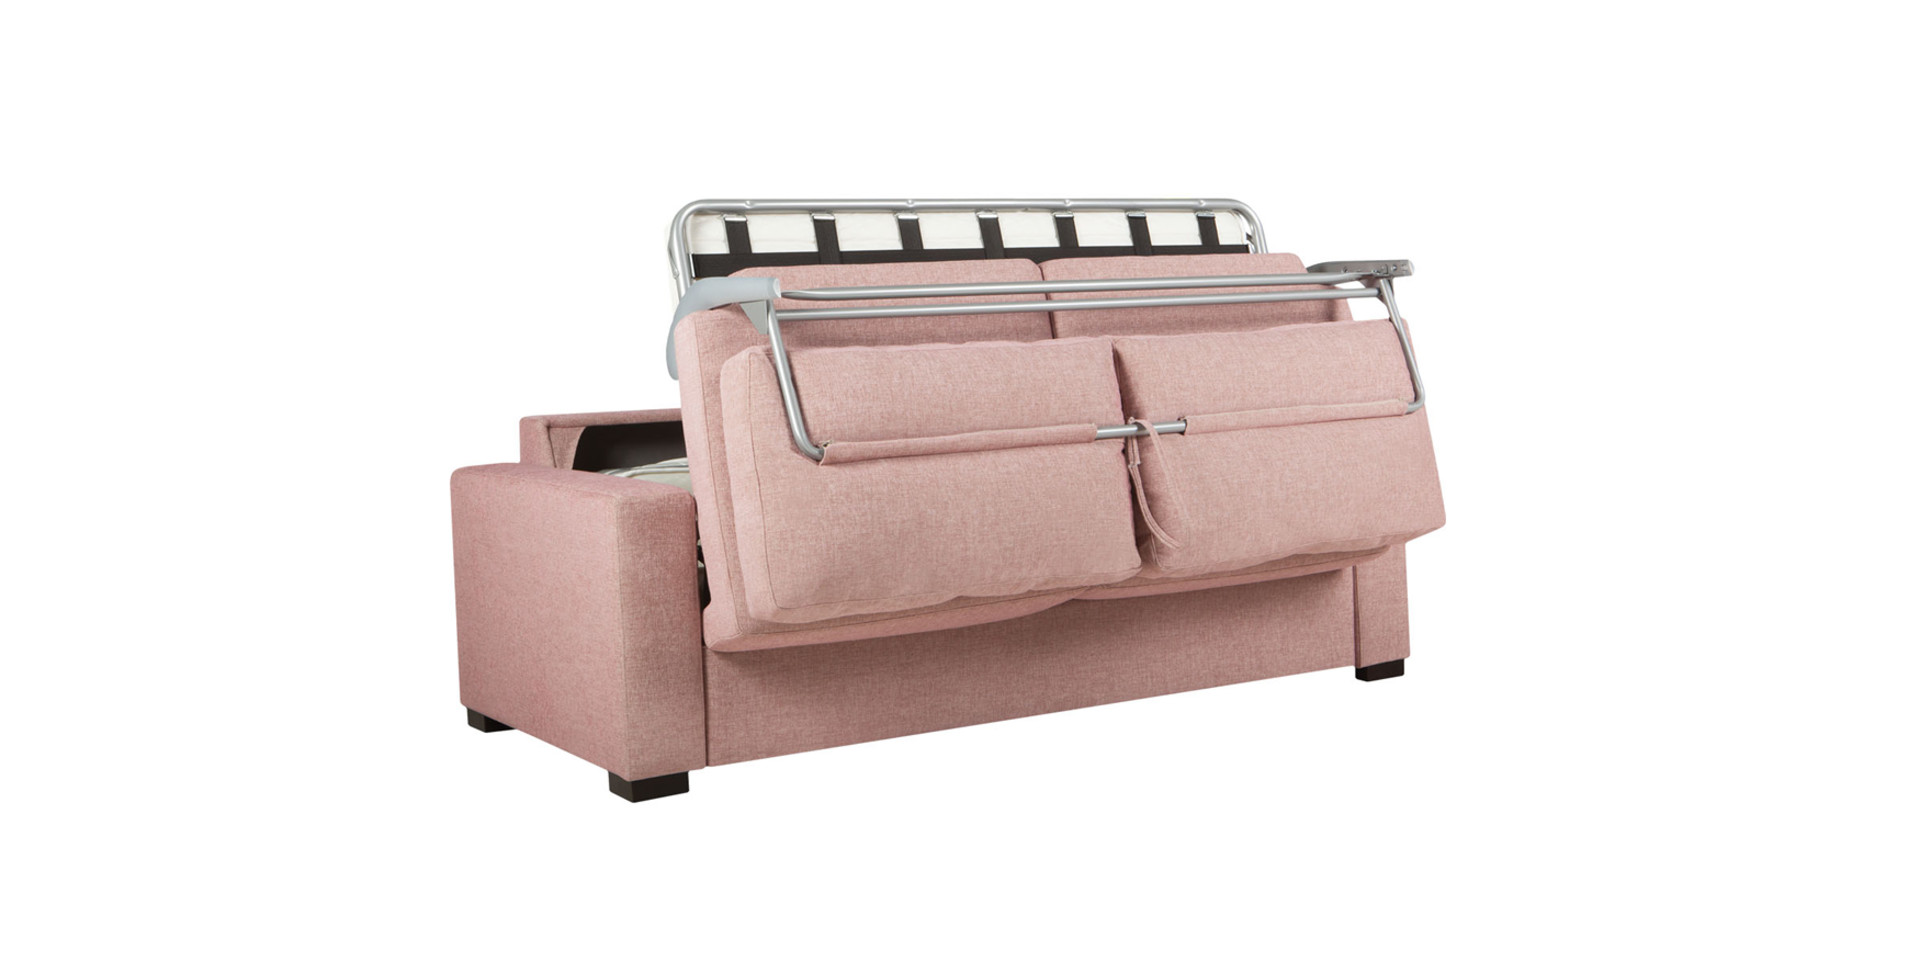 sits-lukas-canape-convertible-sofa_bed3_divine61_pink_7_1